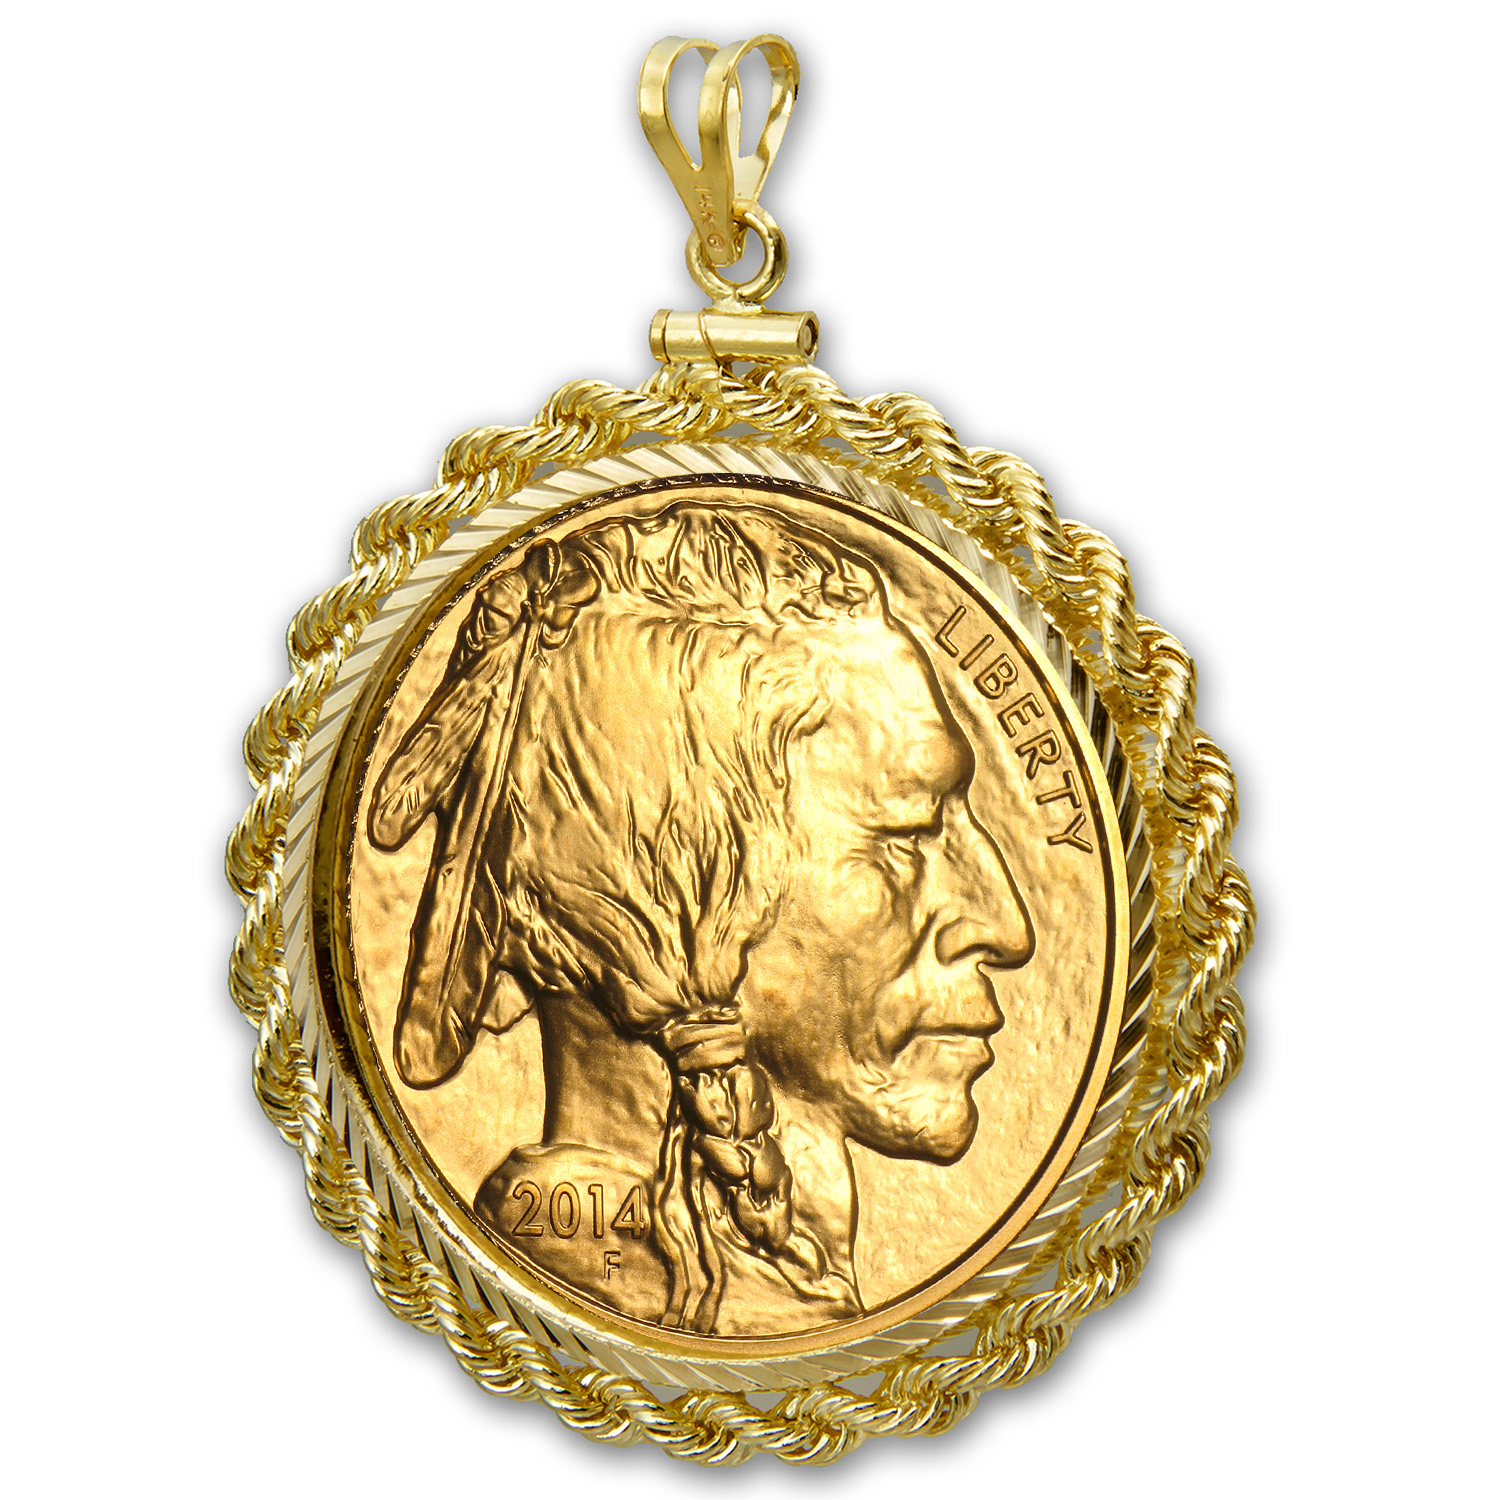 2014 1 oz Gold Buffalo Pendant (Rope-Diamond Cut Screw Top Bezel)